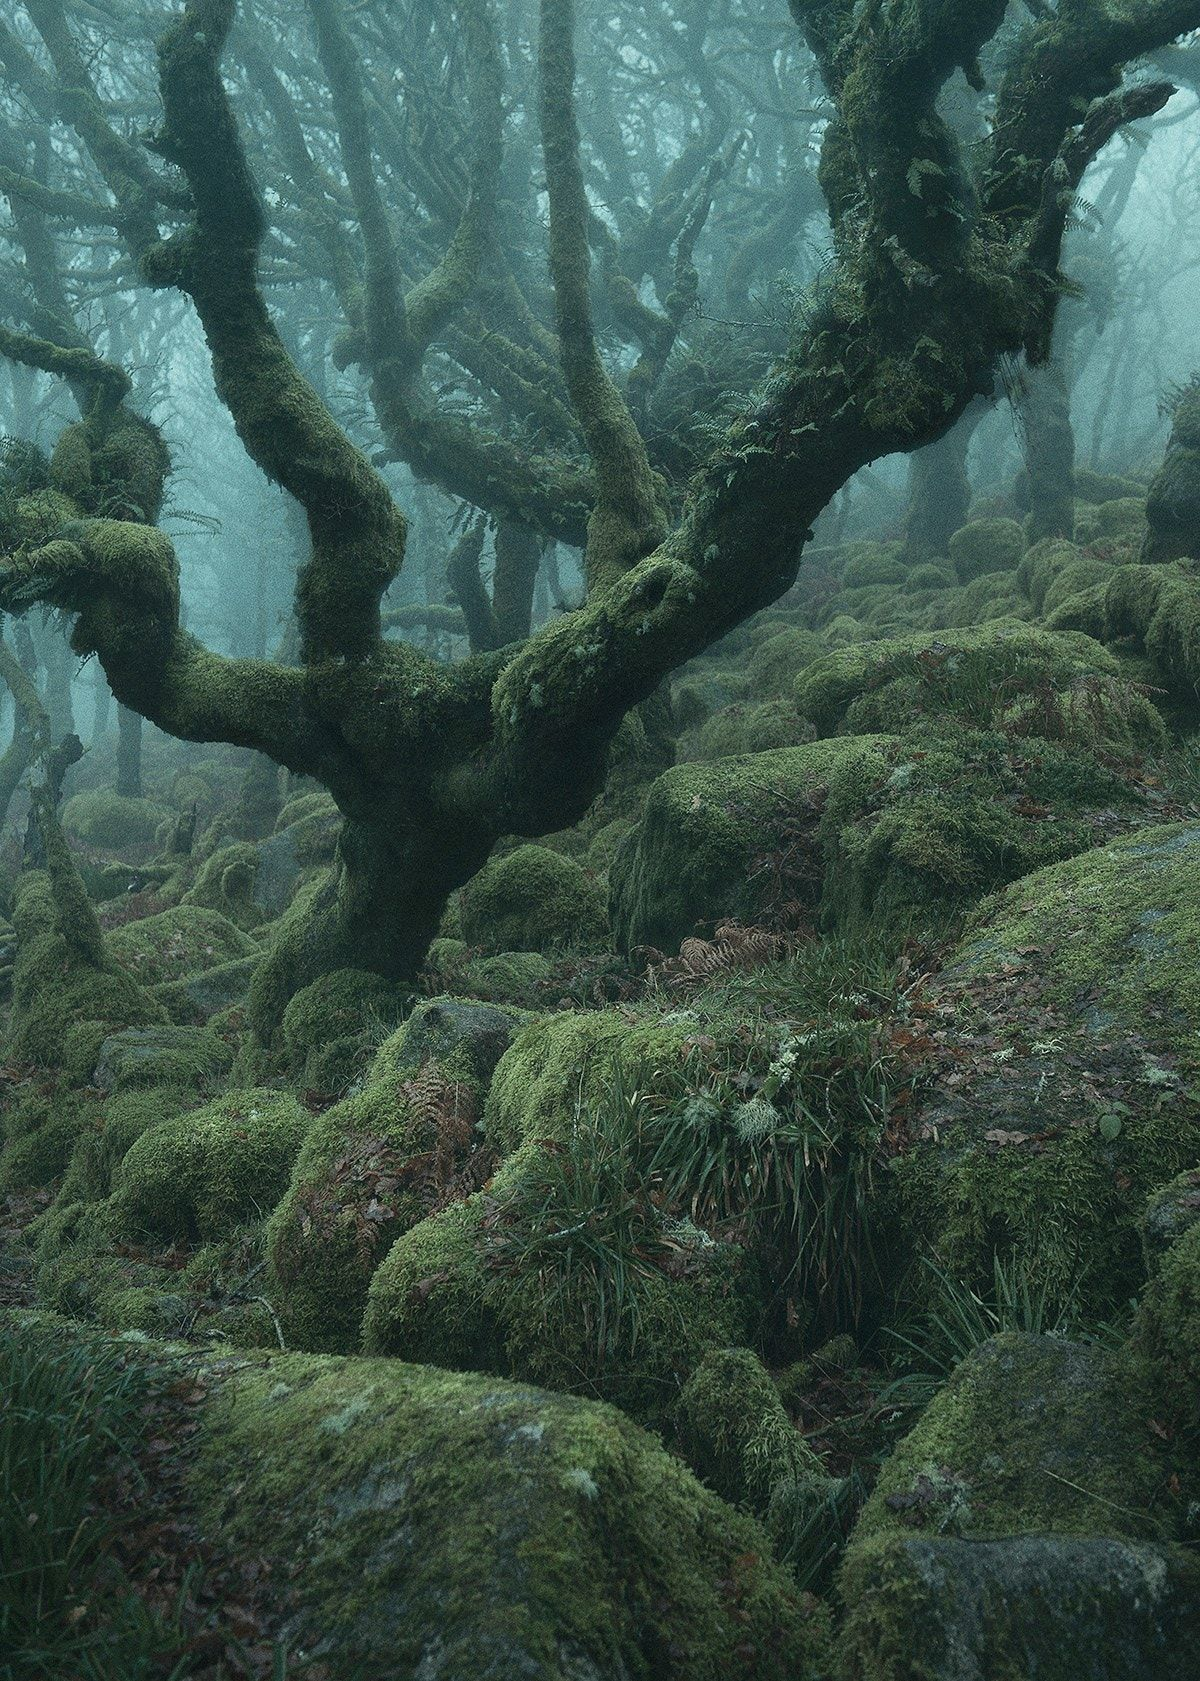 Is That Dagobah? No, Just a Real-Life Magical Forest | WIRED